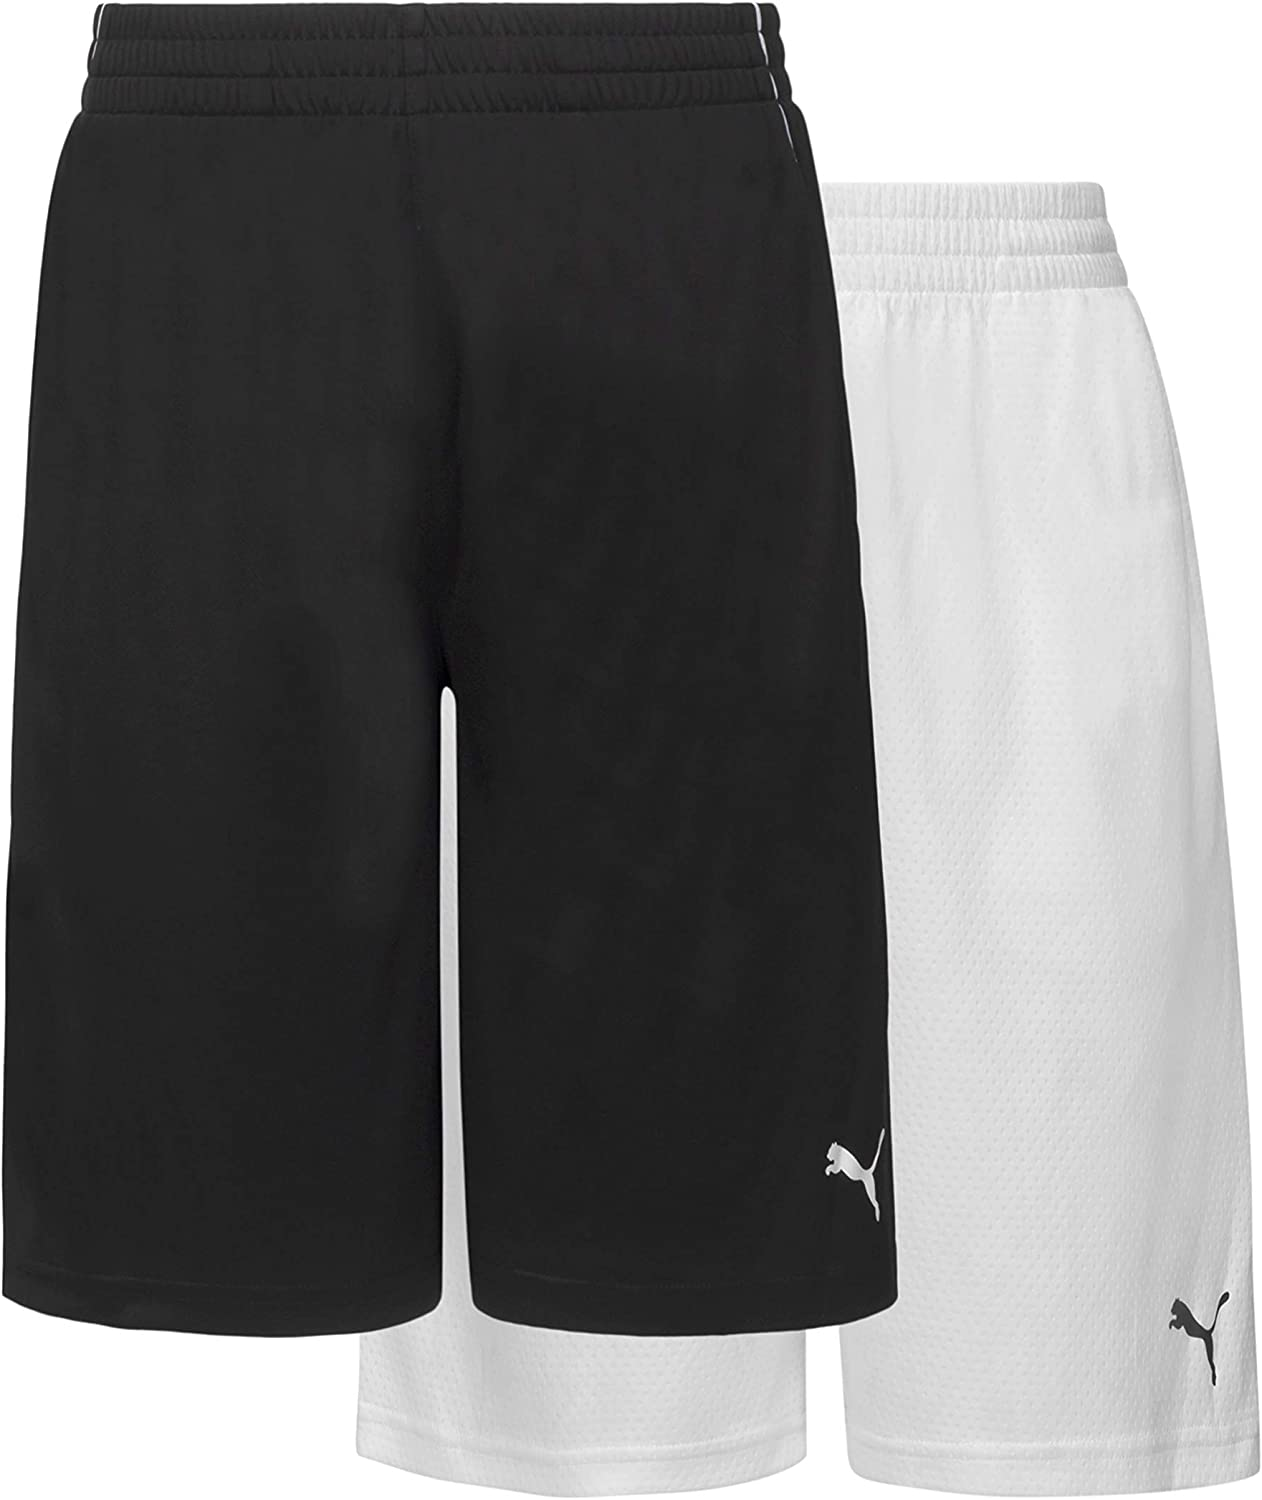 PUMA Boys' 2pk Performance Mesh Outlet ☆ Free Shipping Logo Short Graphic New product!! Set